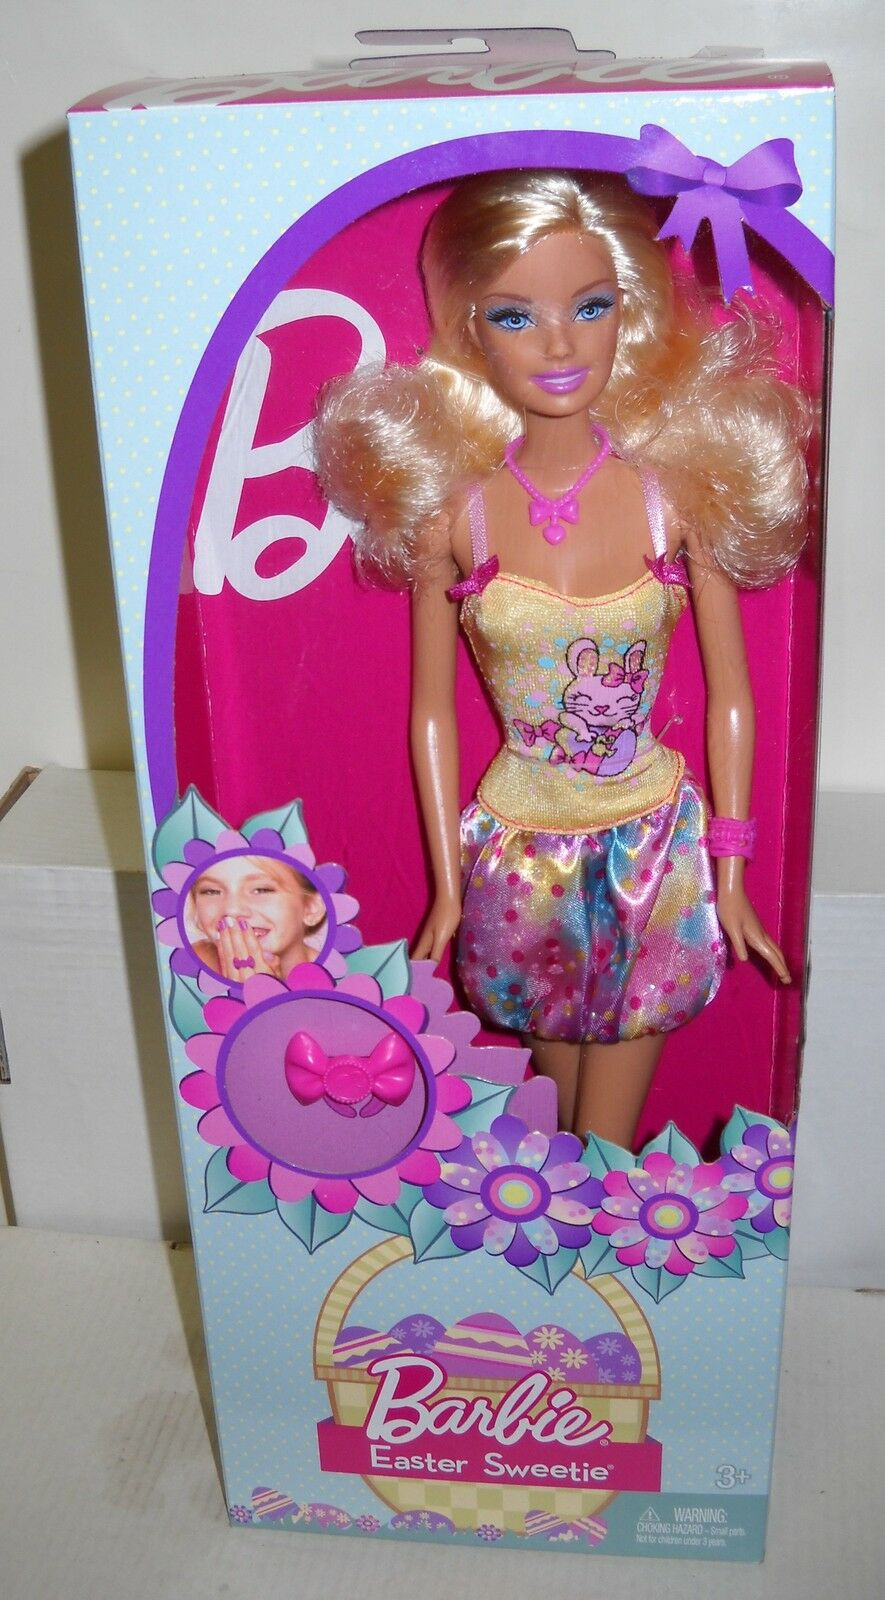 NRFB Mattel Easter Series 2013 Easter Sweetie Barbie Doll Special Edition